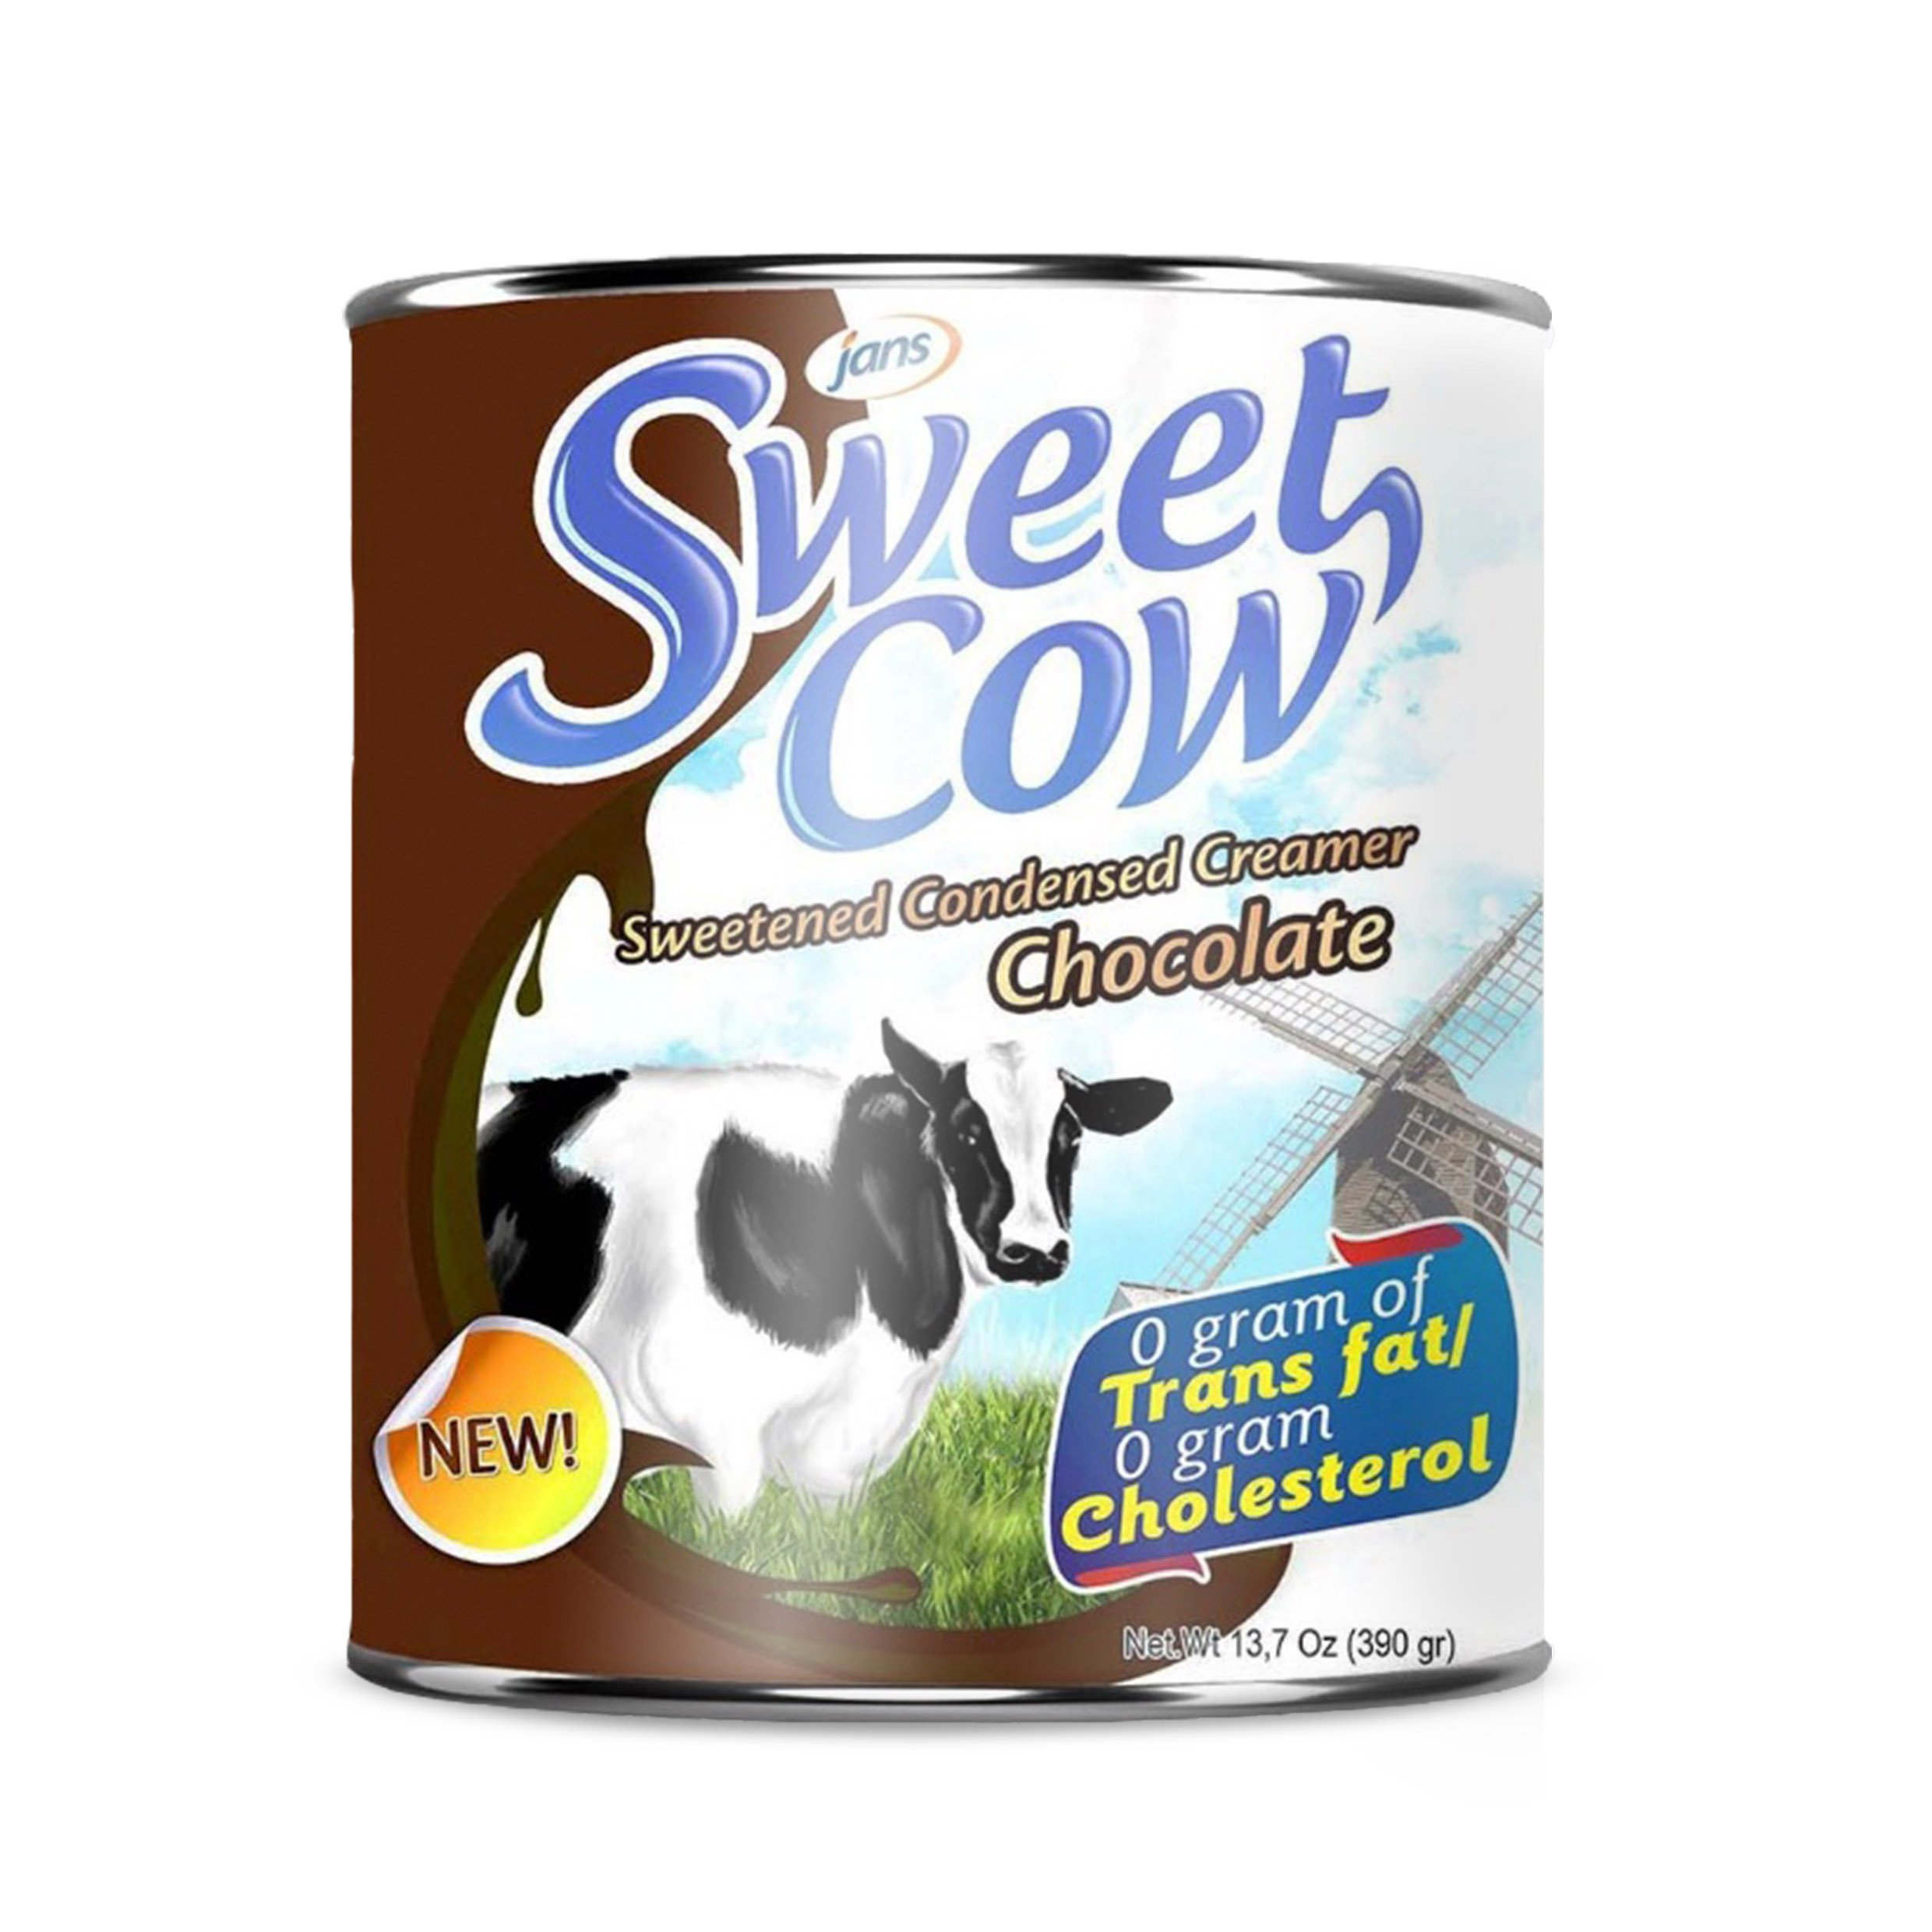 Sweet Cow Chocolate Sweetened Condensed Creamer (13.23 oz) Pack of 16